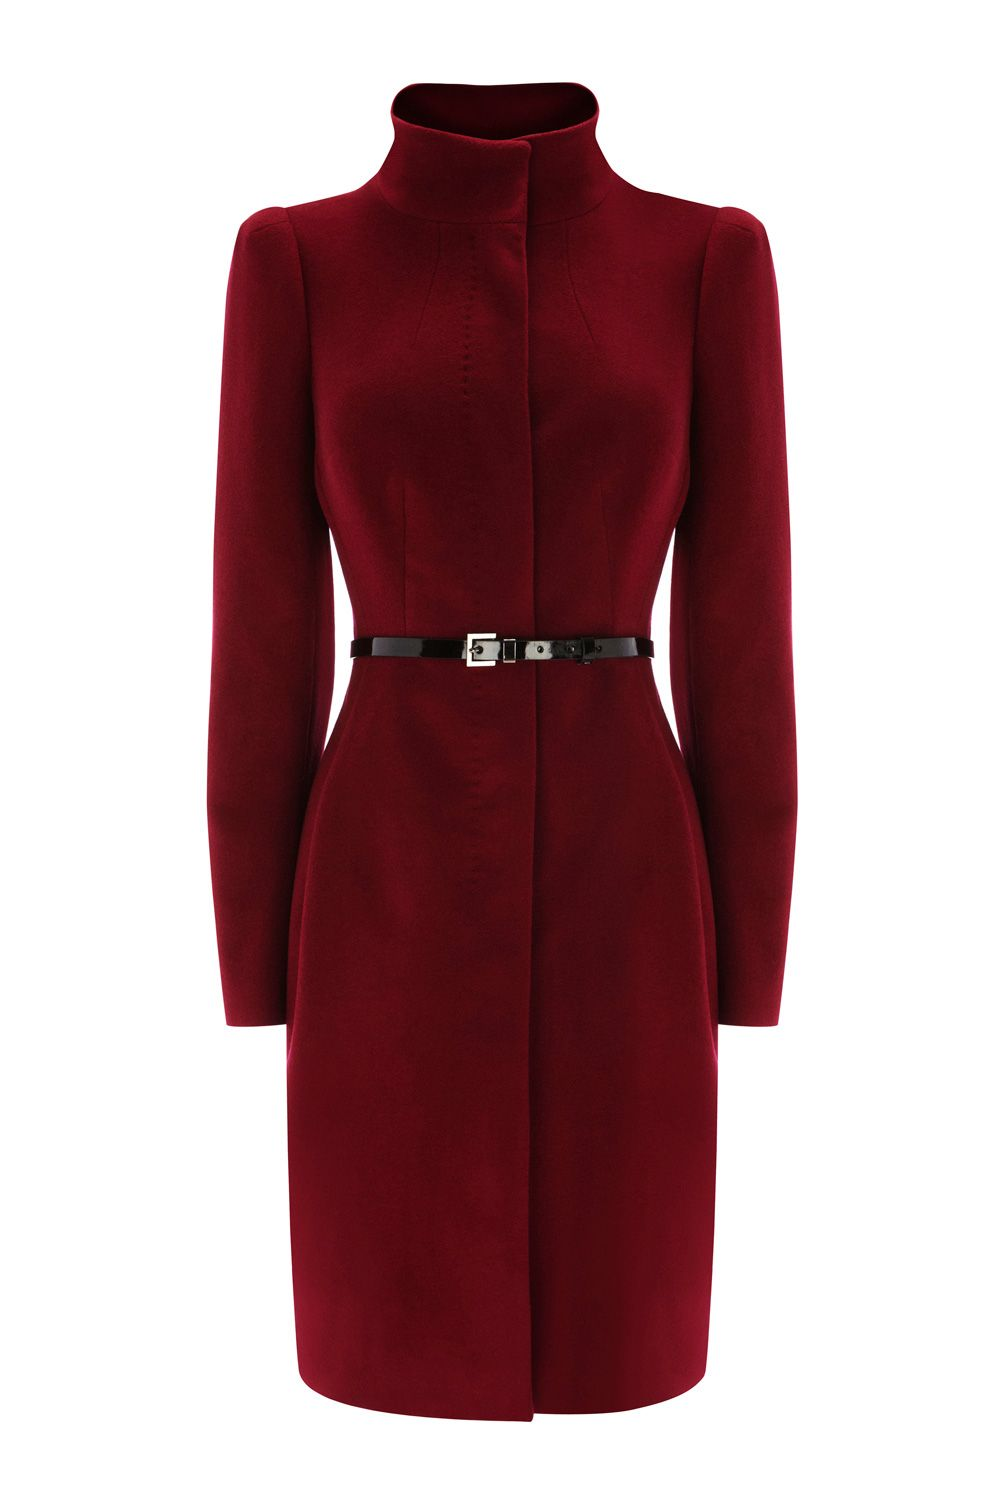 Coast Coast Kyra Coat in Red | Lyst